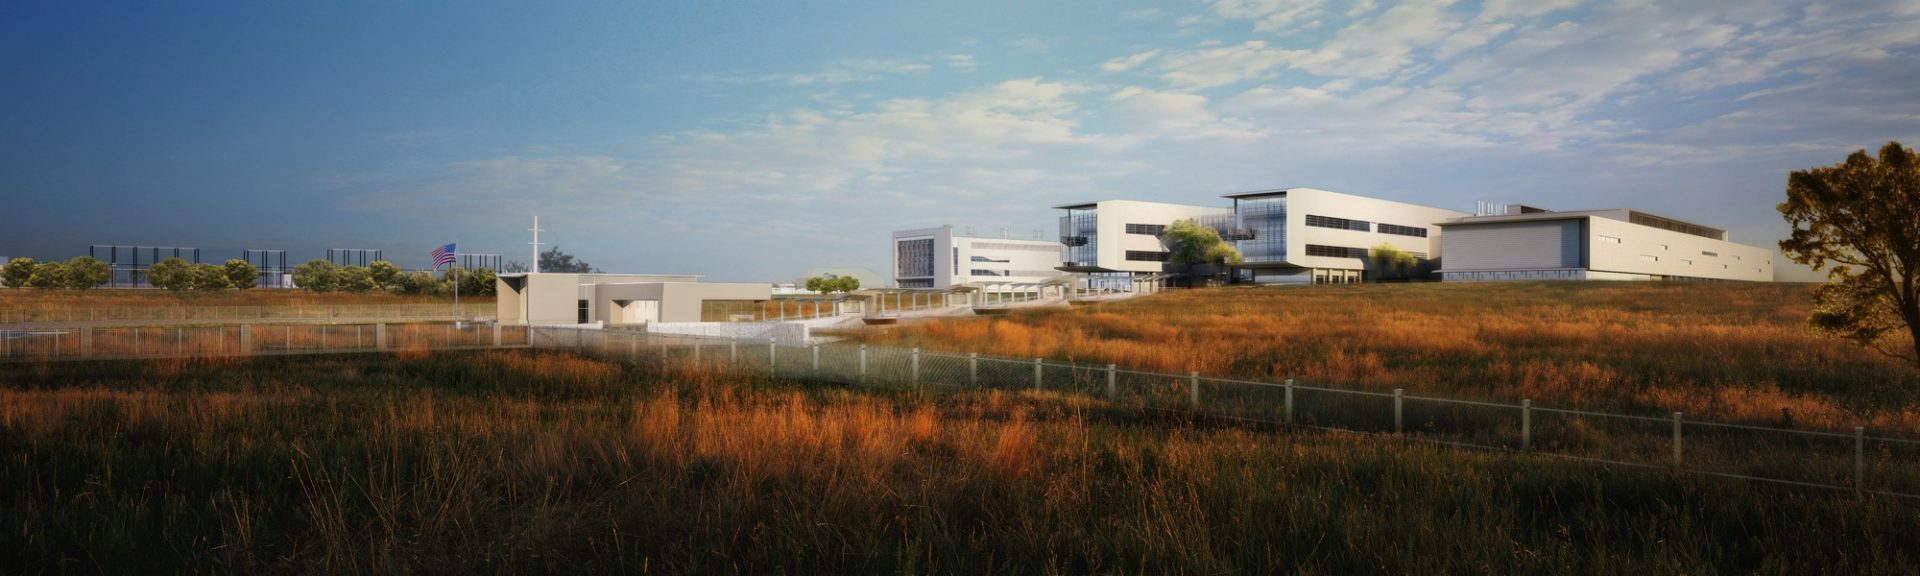 Architectural rendering of the new NBAF facility at Kansas State University in Manhattan, Kansas. Courtesy of Ron Trewyn / Department of Homeland Security